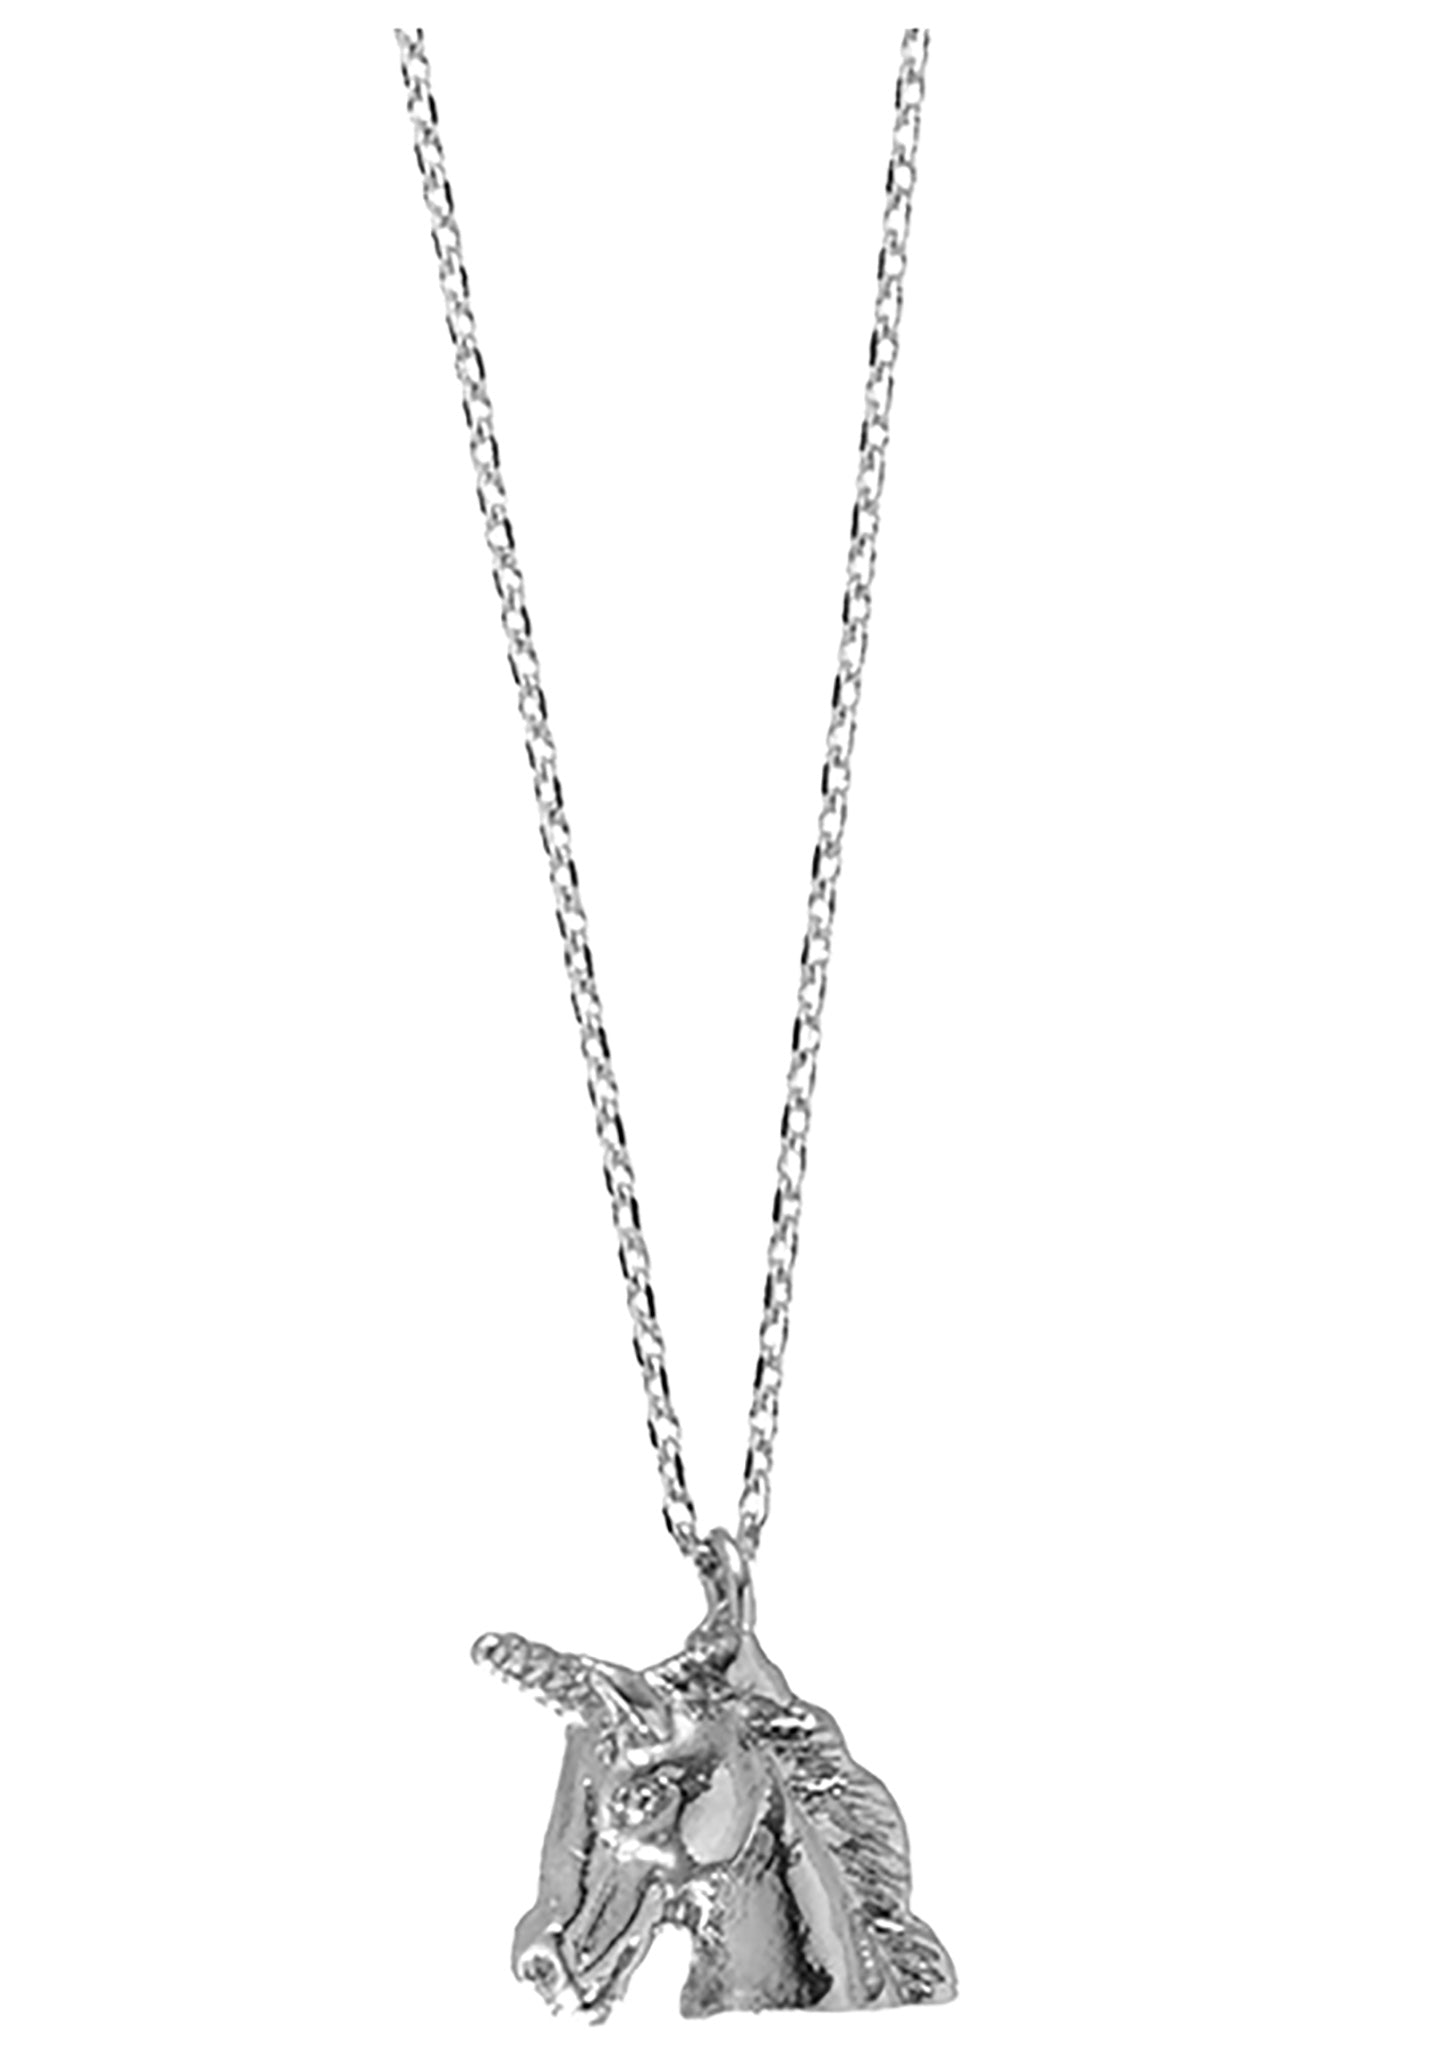 Wanderlust + Co Emoji Unicorn Necklace in Silver